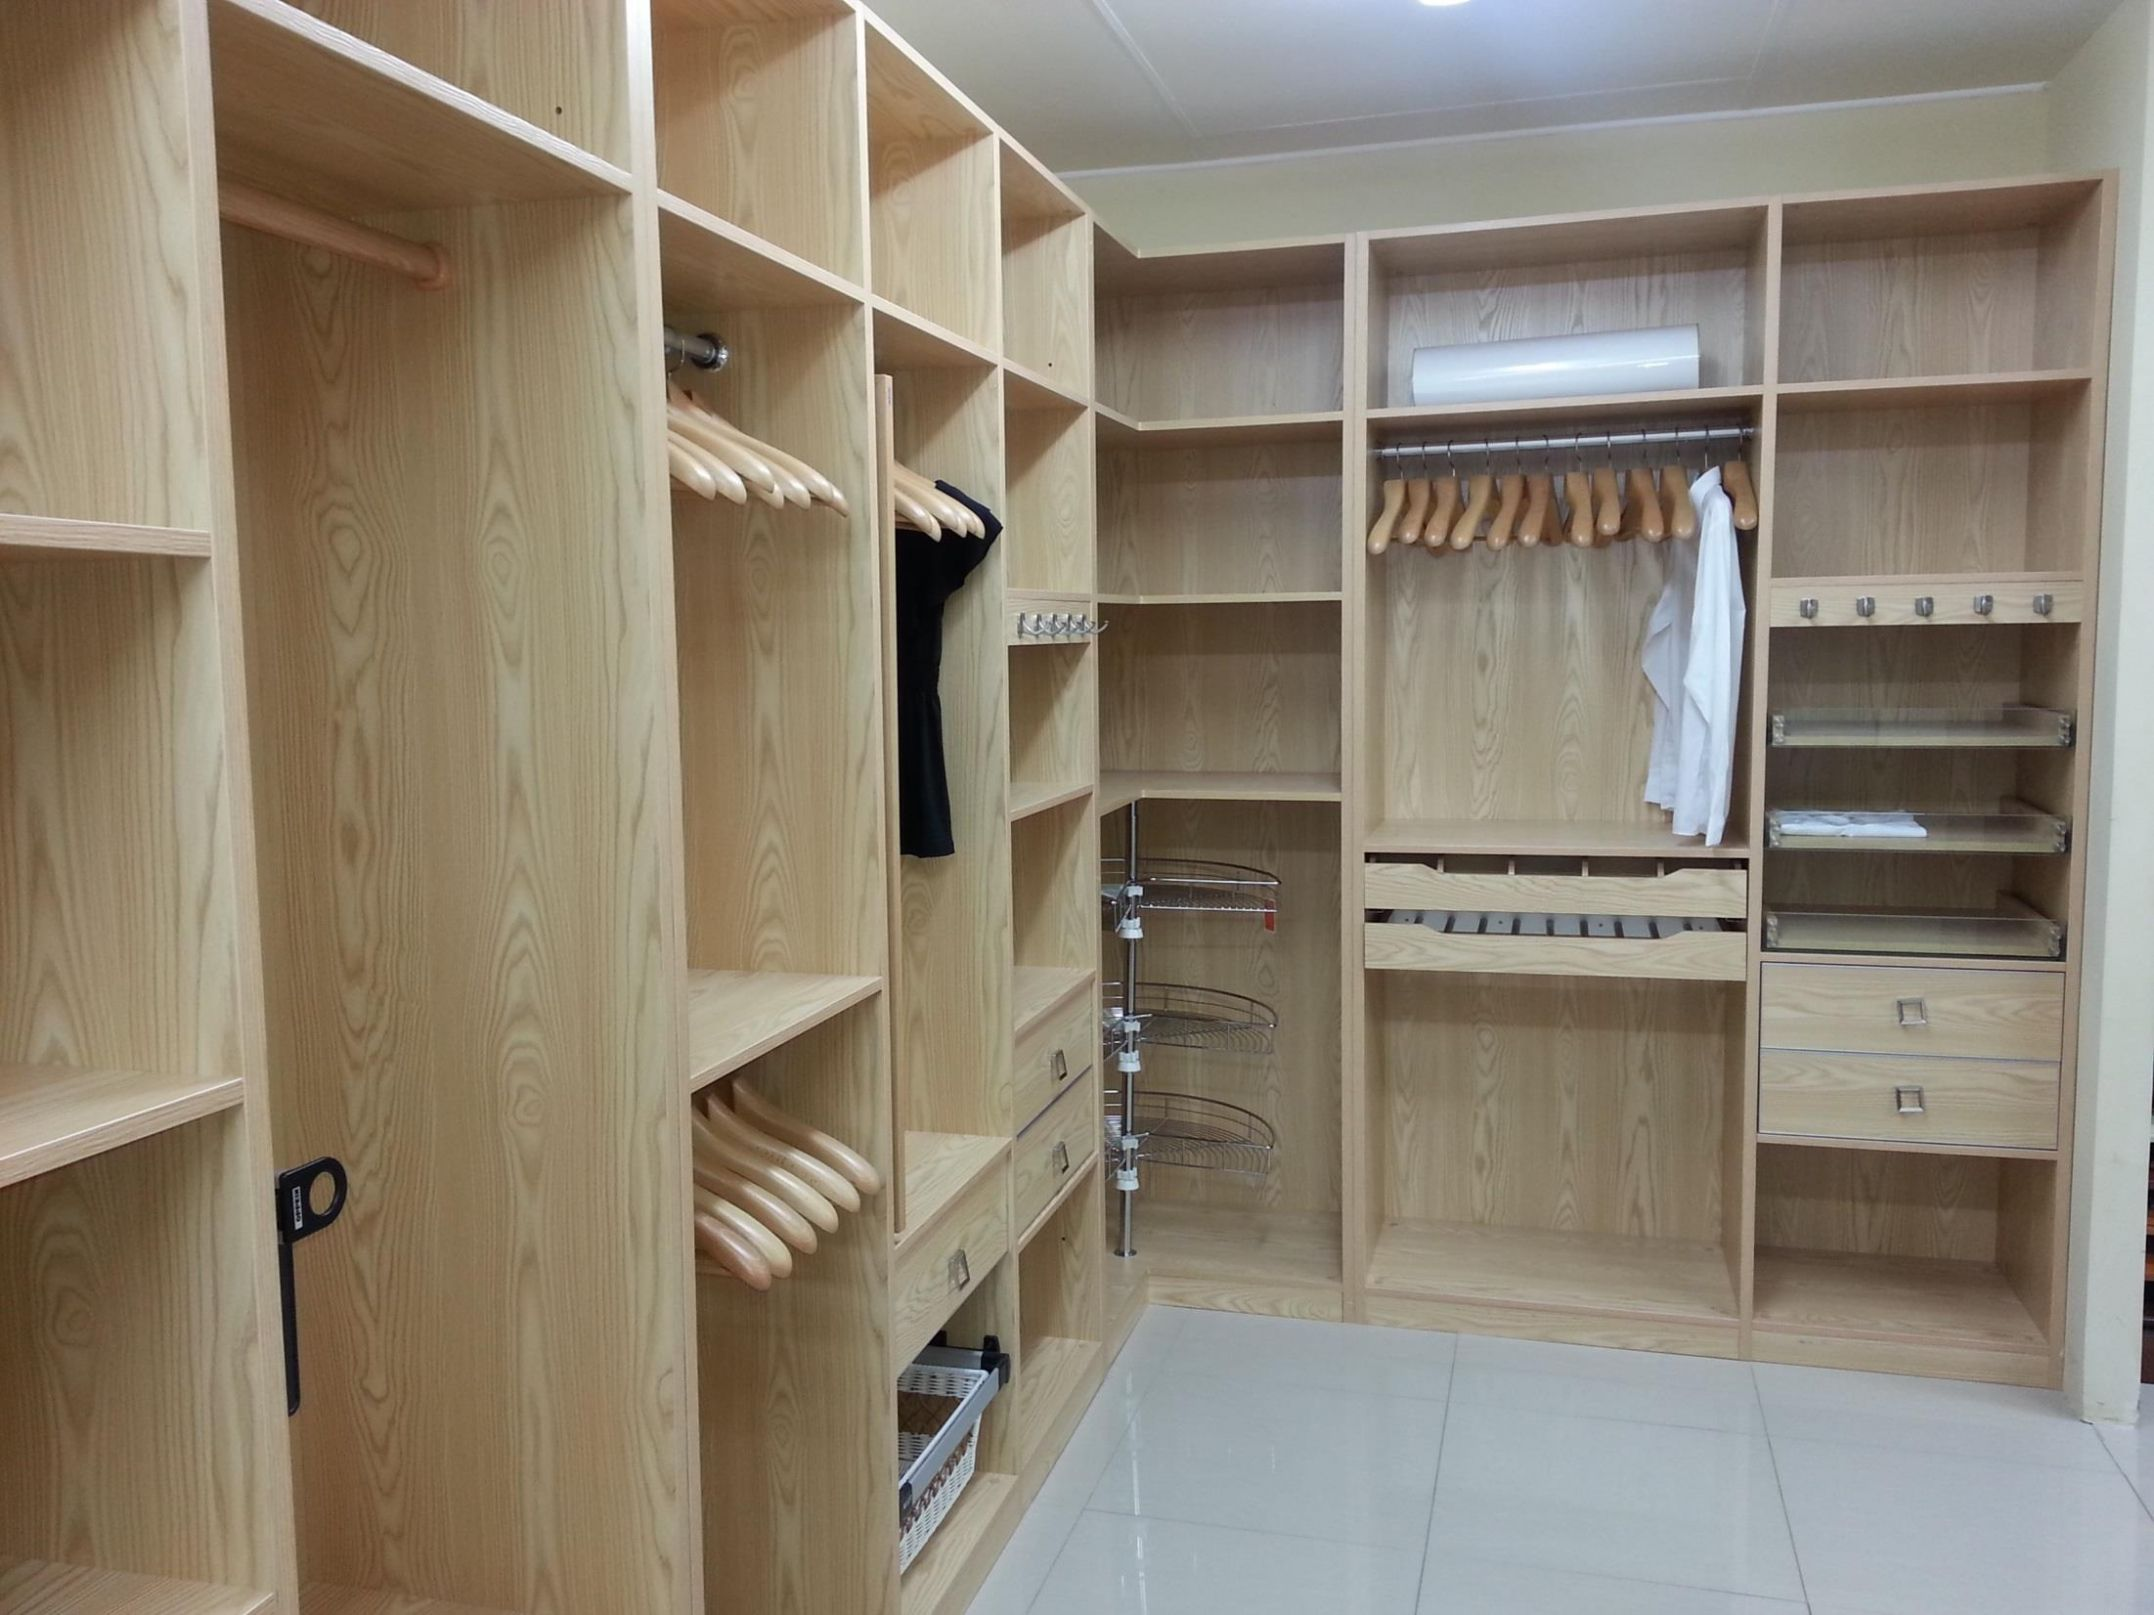 Ordinaire 5 X 7 Walk In Closet Design   Best Master Furniture Check More At Http: